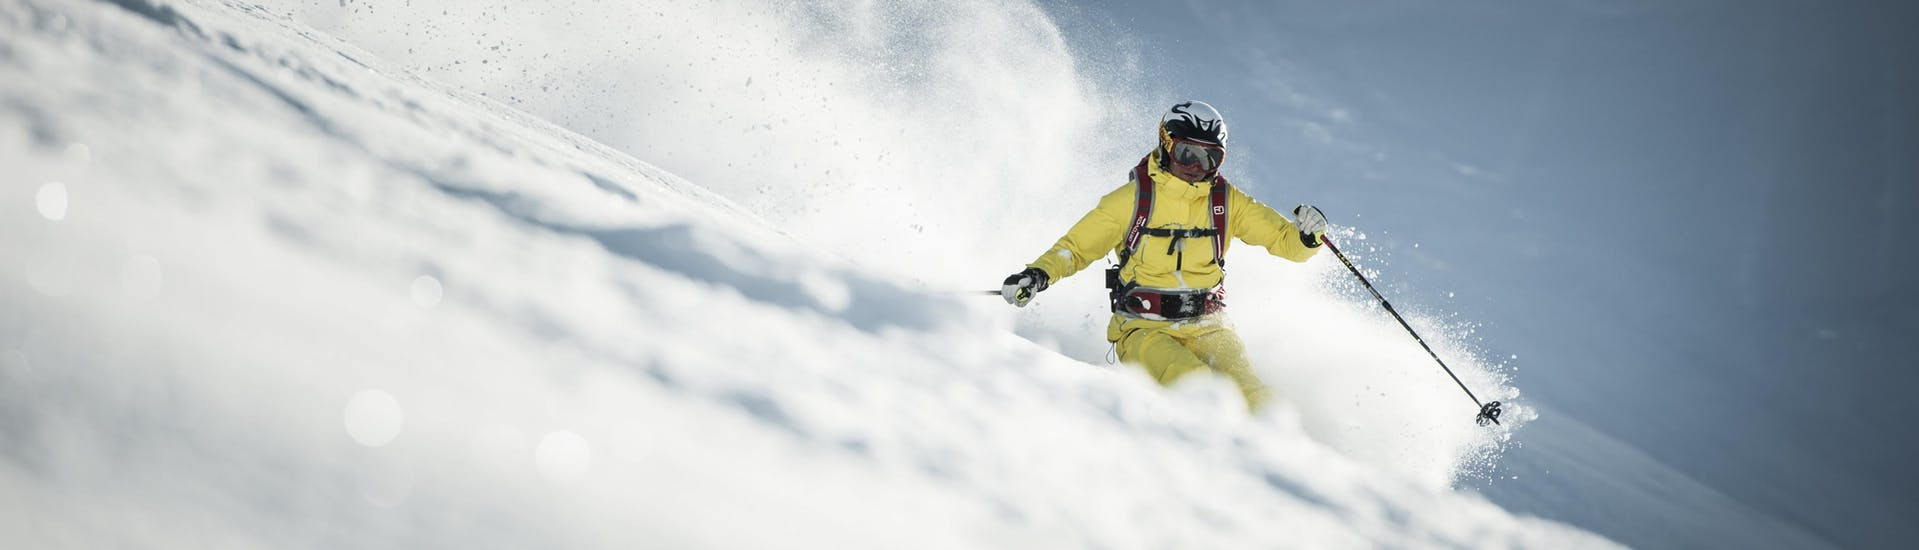 A skier is making his way down a deep powder snow slope during his off piste skiing lessons.